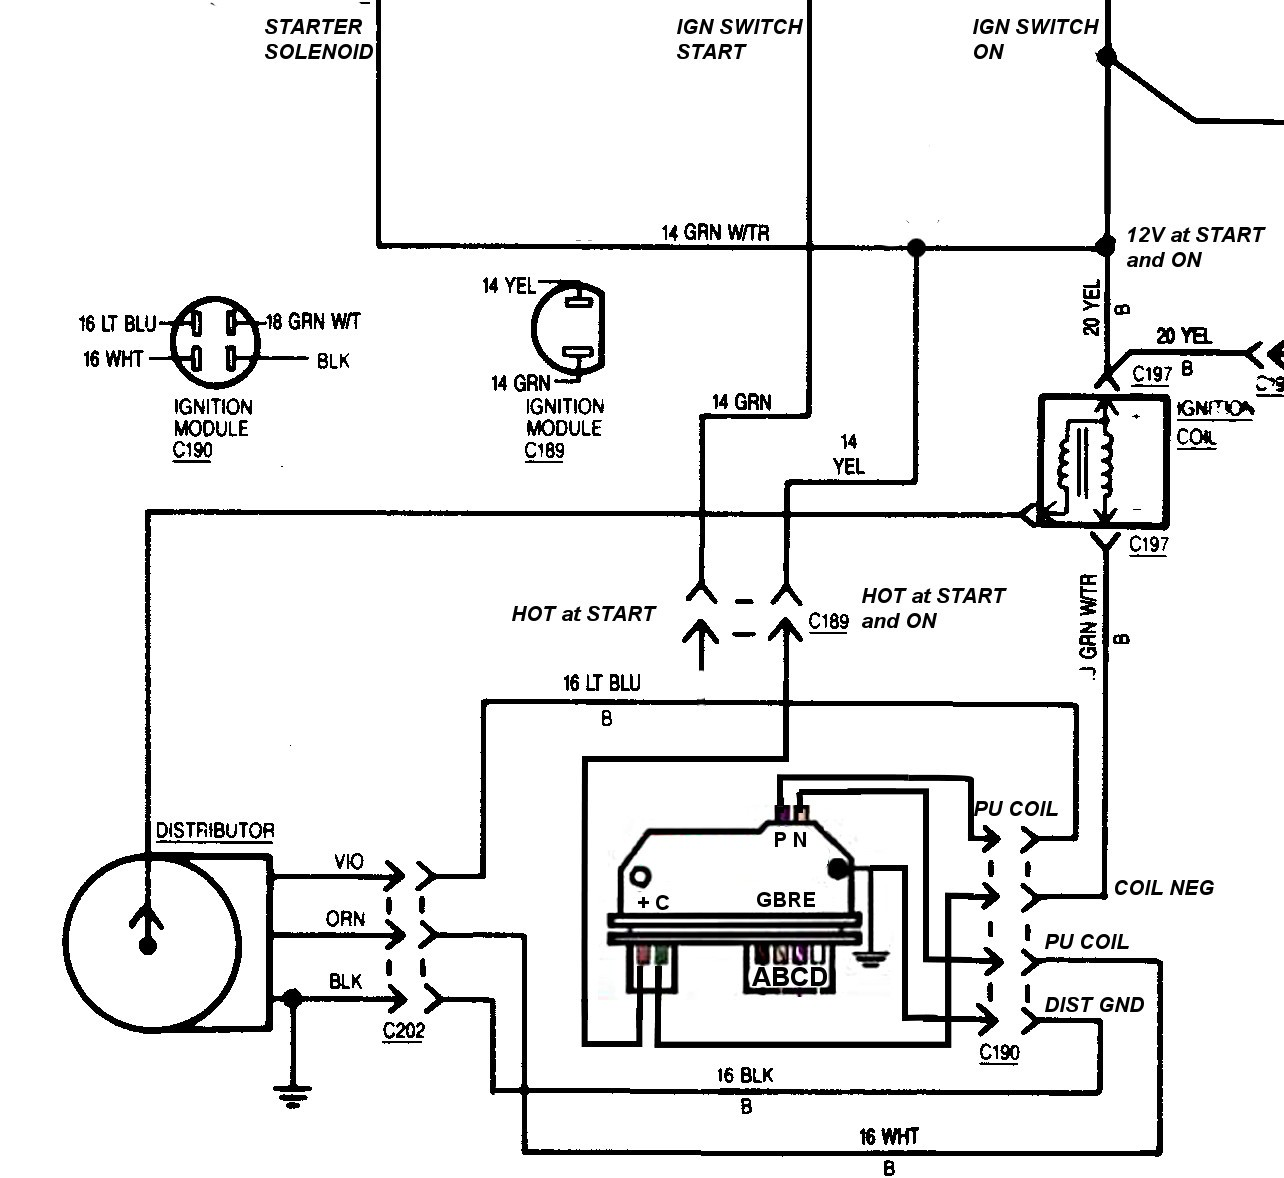 Ignition Control Module Wiring Diagram